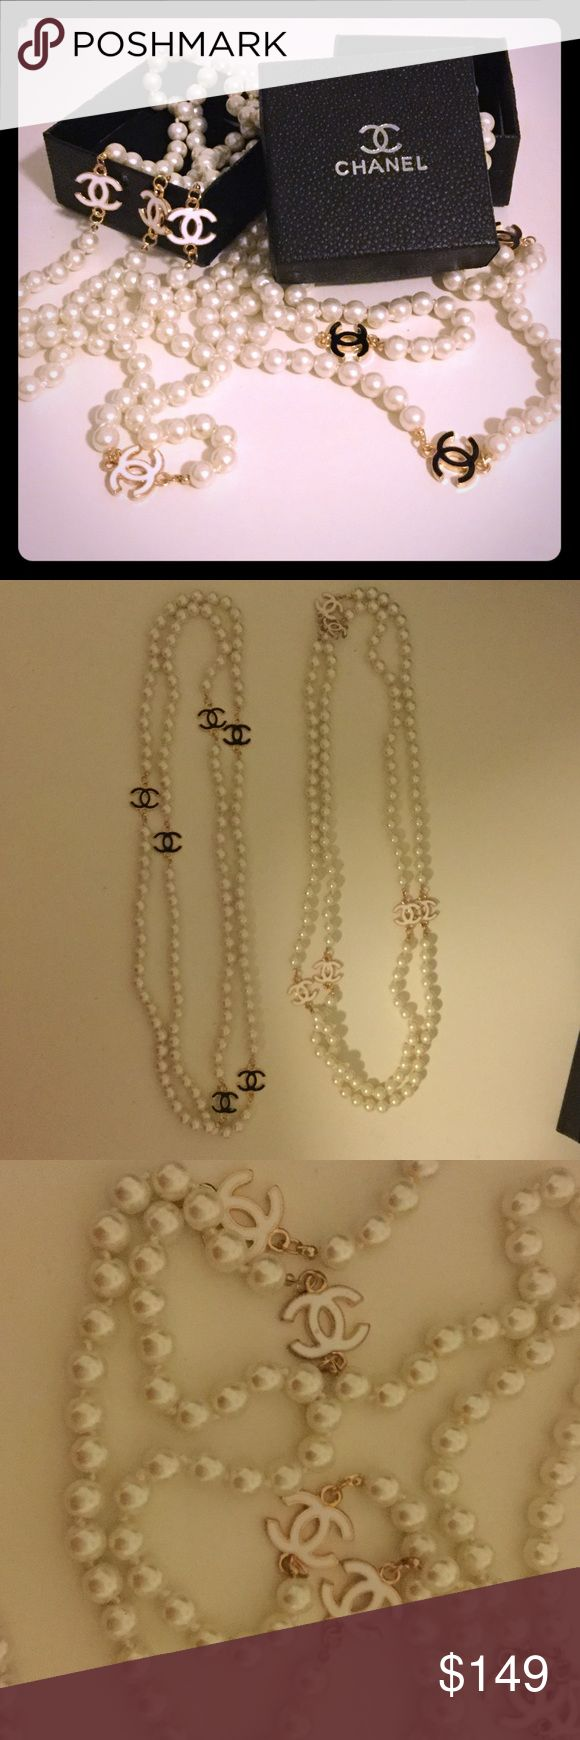 CC White Pearl Necklace Measuring at approximately 26 inch long. Can be worn doubled up too. Choose white OR black cc necklace. Both good tone. 6 cc on each necklace. Priced just right. Comes with box and dust bag. Only one of each available. Won't last long. Don't lowball offer please be reasonable high quality piece. CHANEL Makeup Lipstick